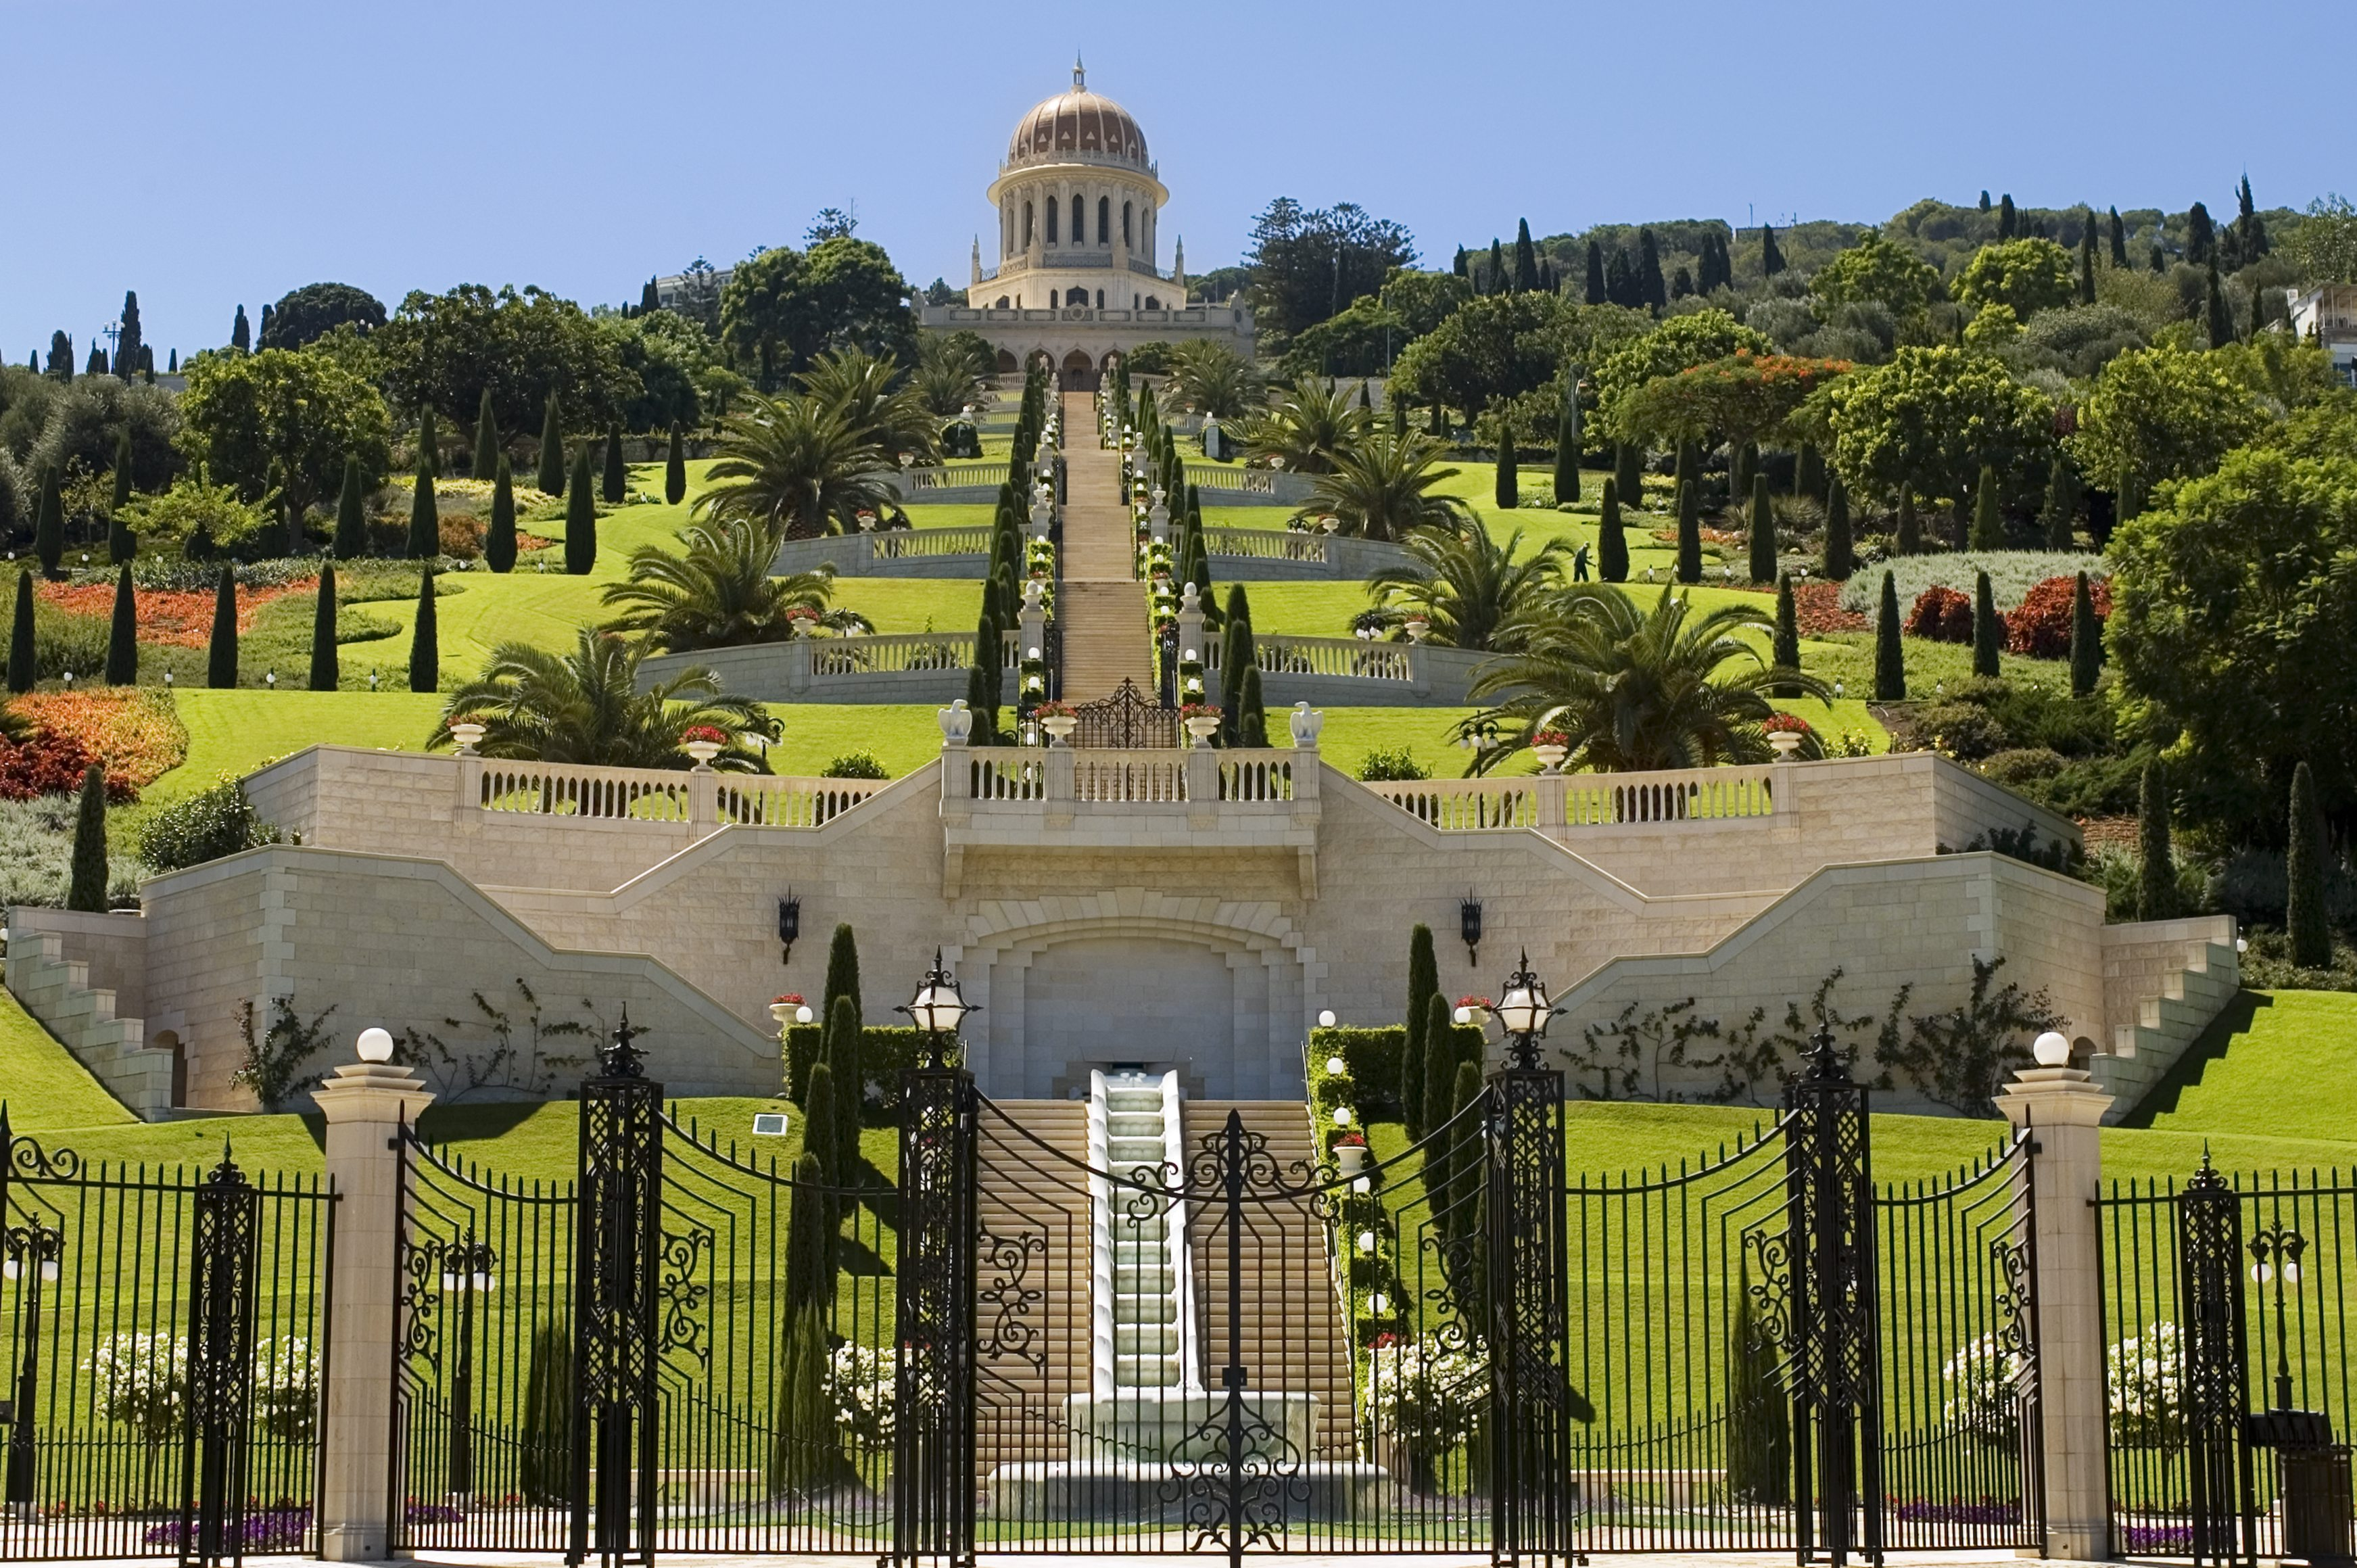 Bahai shrine and gardens, Haifa